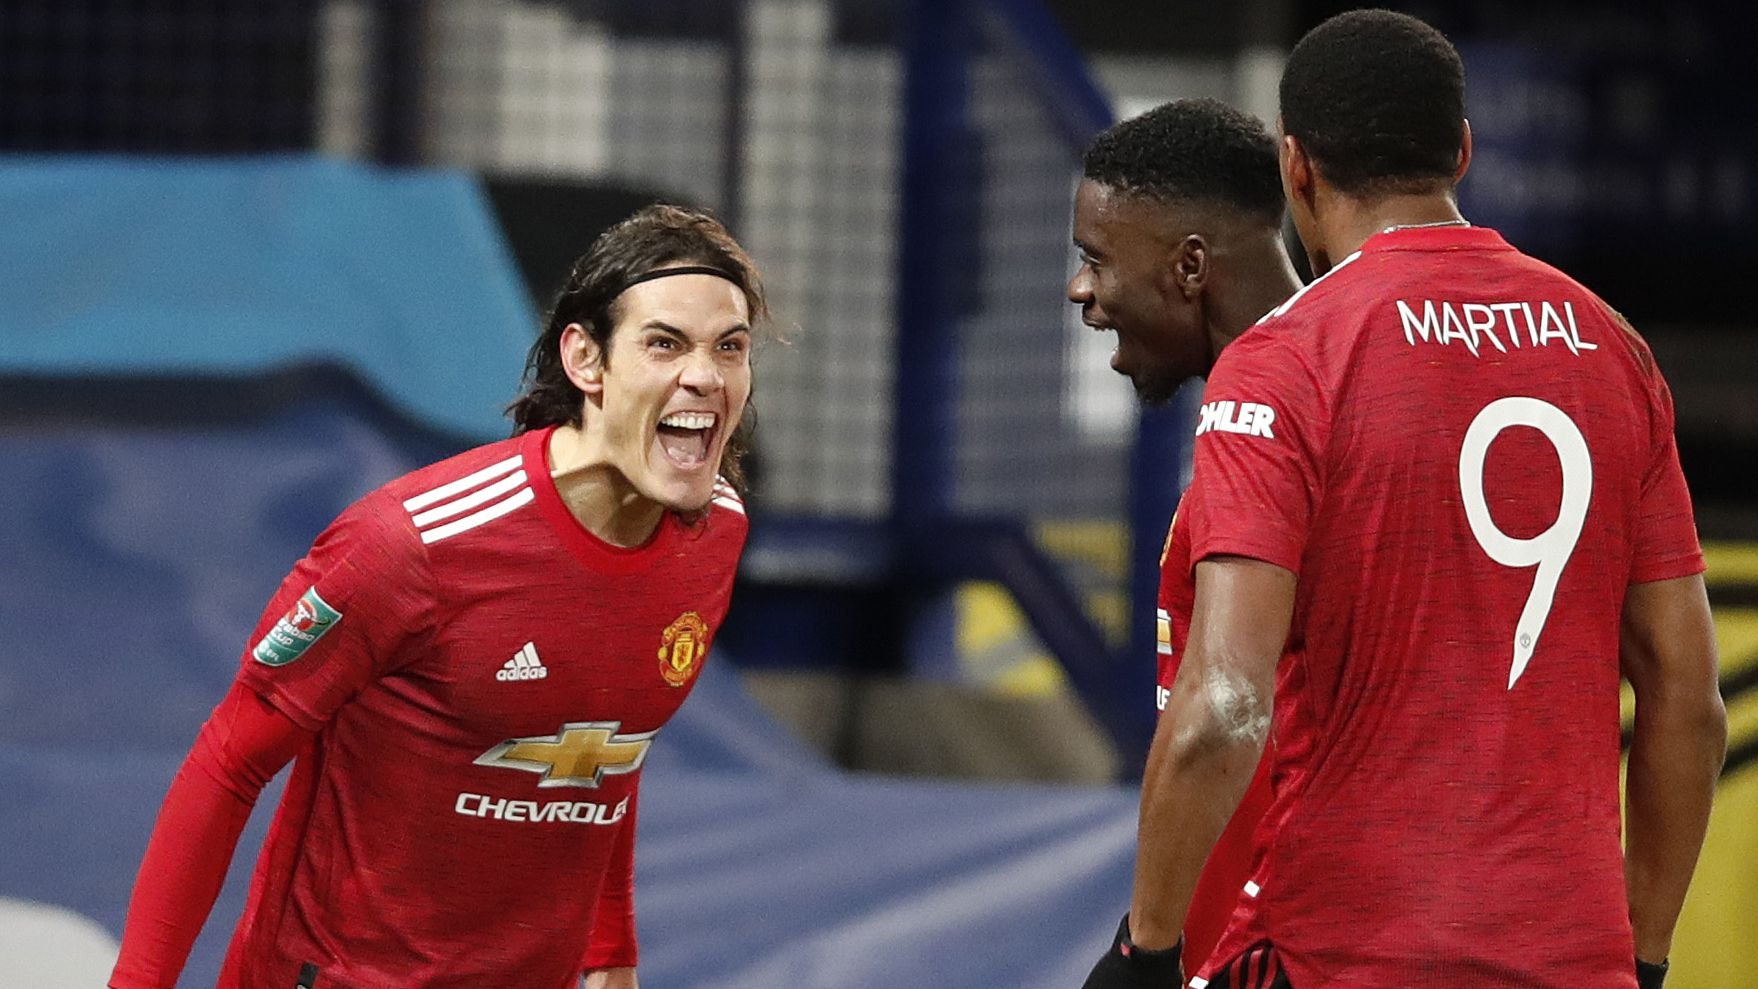 Edinson Cavani of Manchester United celebrates with Axel Tuanzebe and Anthony Martial.